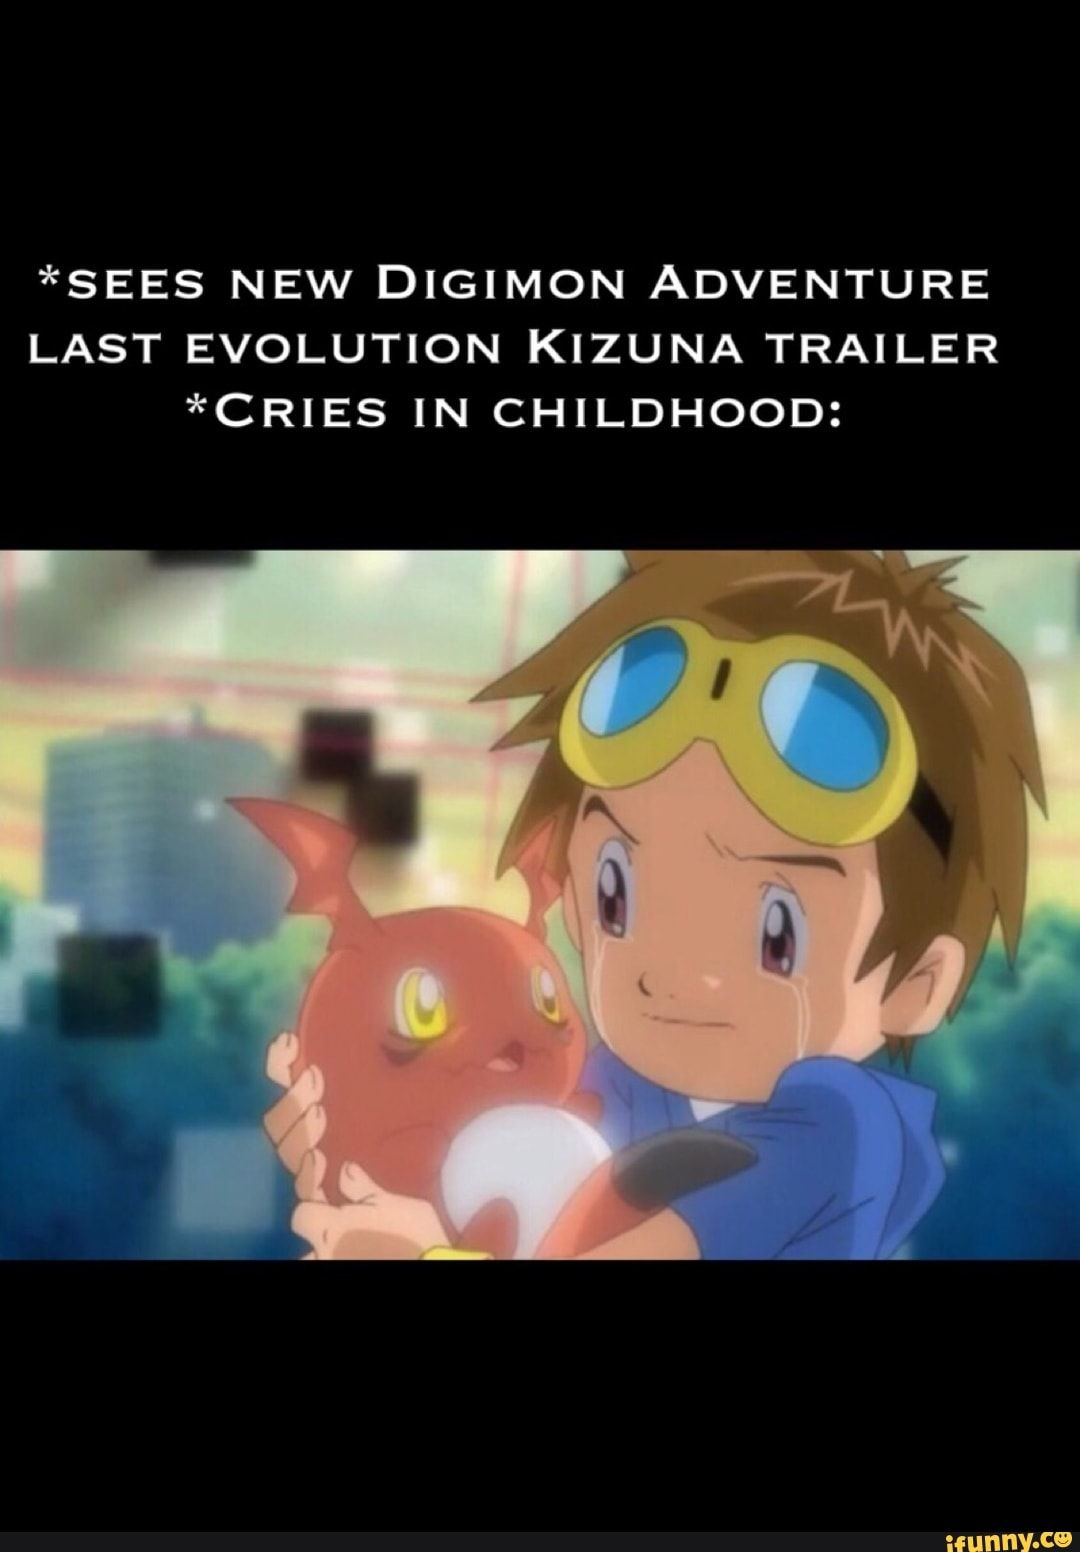 You Can T Buy Fun But You Can Download It Digimon Adventure Digimon Adventure Last Evolution Kizuna Digimon Adventure Last Evolution